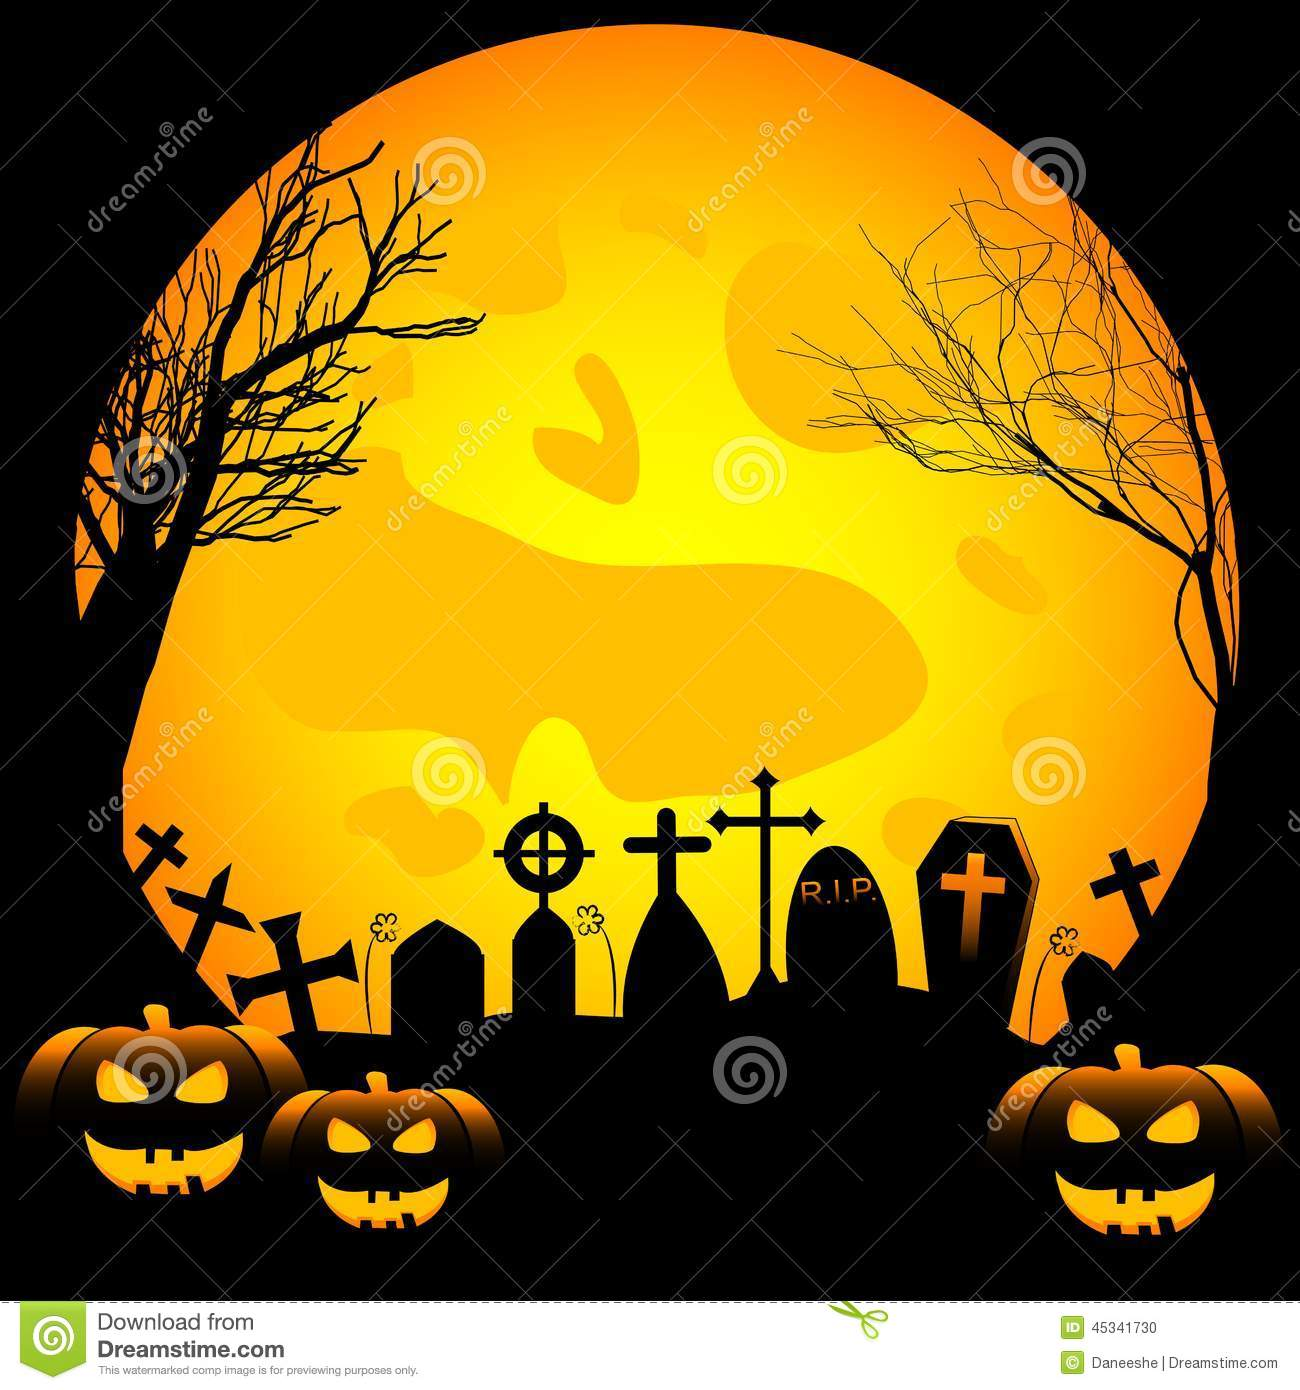 festive illustration on theme of halloween. wishes for happy